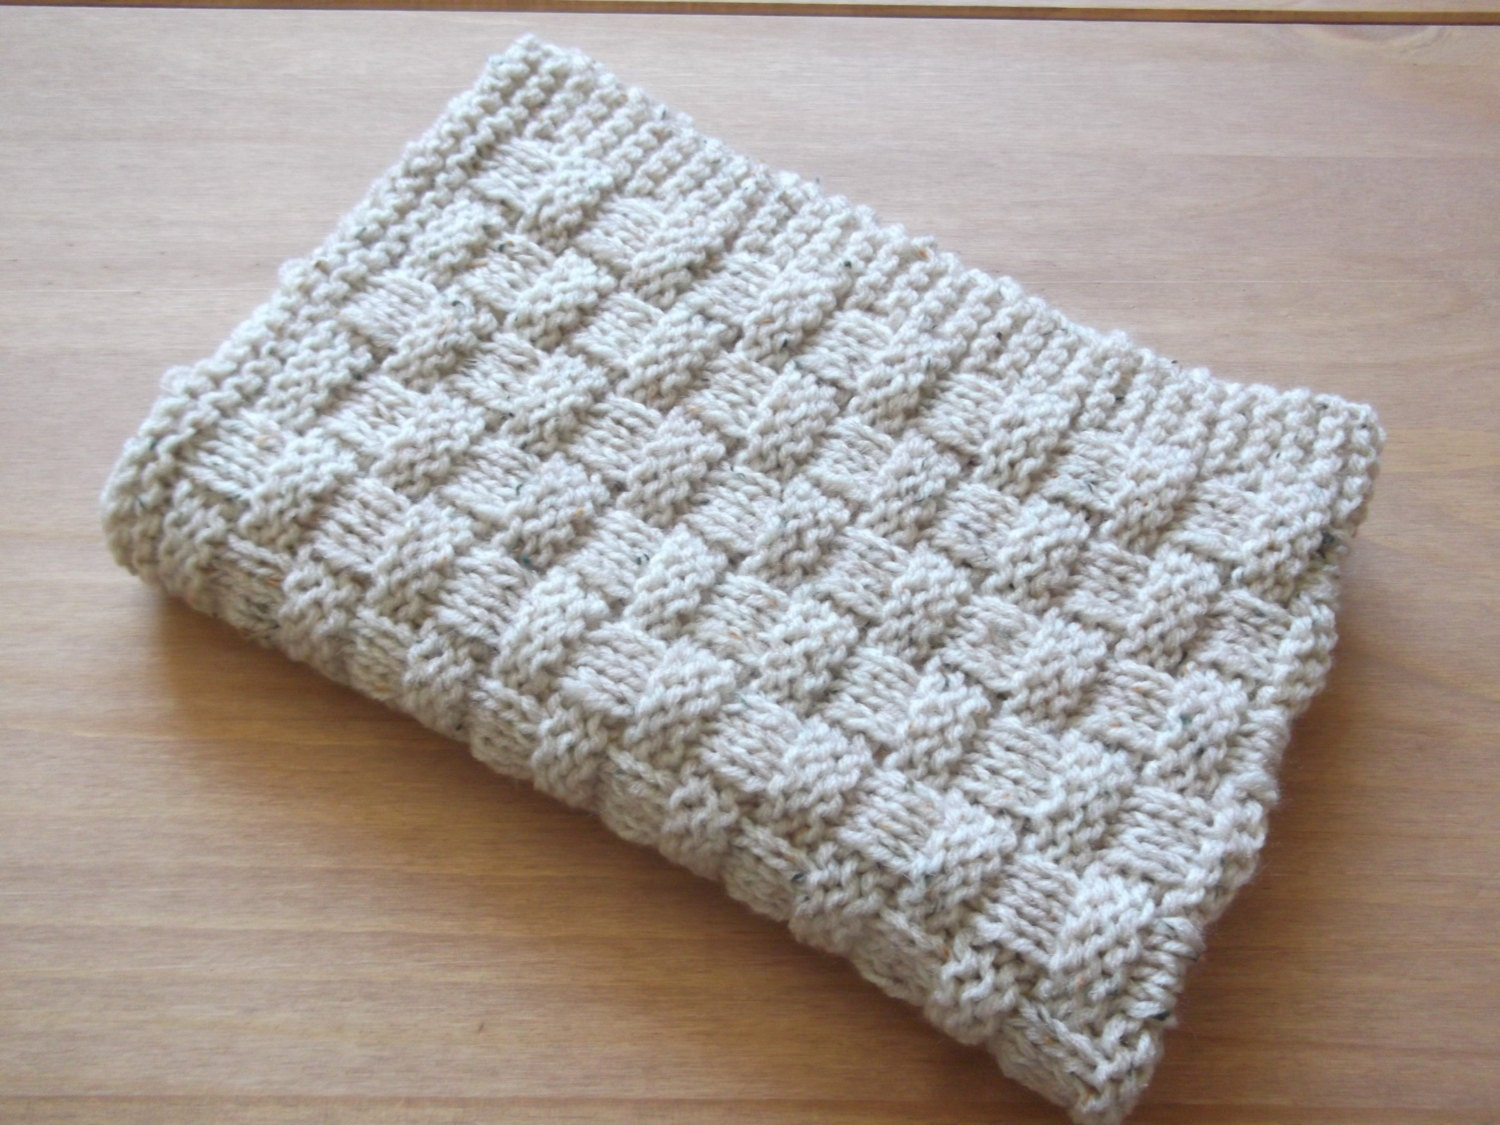 Crochet Lap Blanket : blanket or lap source abuse report lap blanket crochet pattern source ...